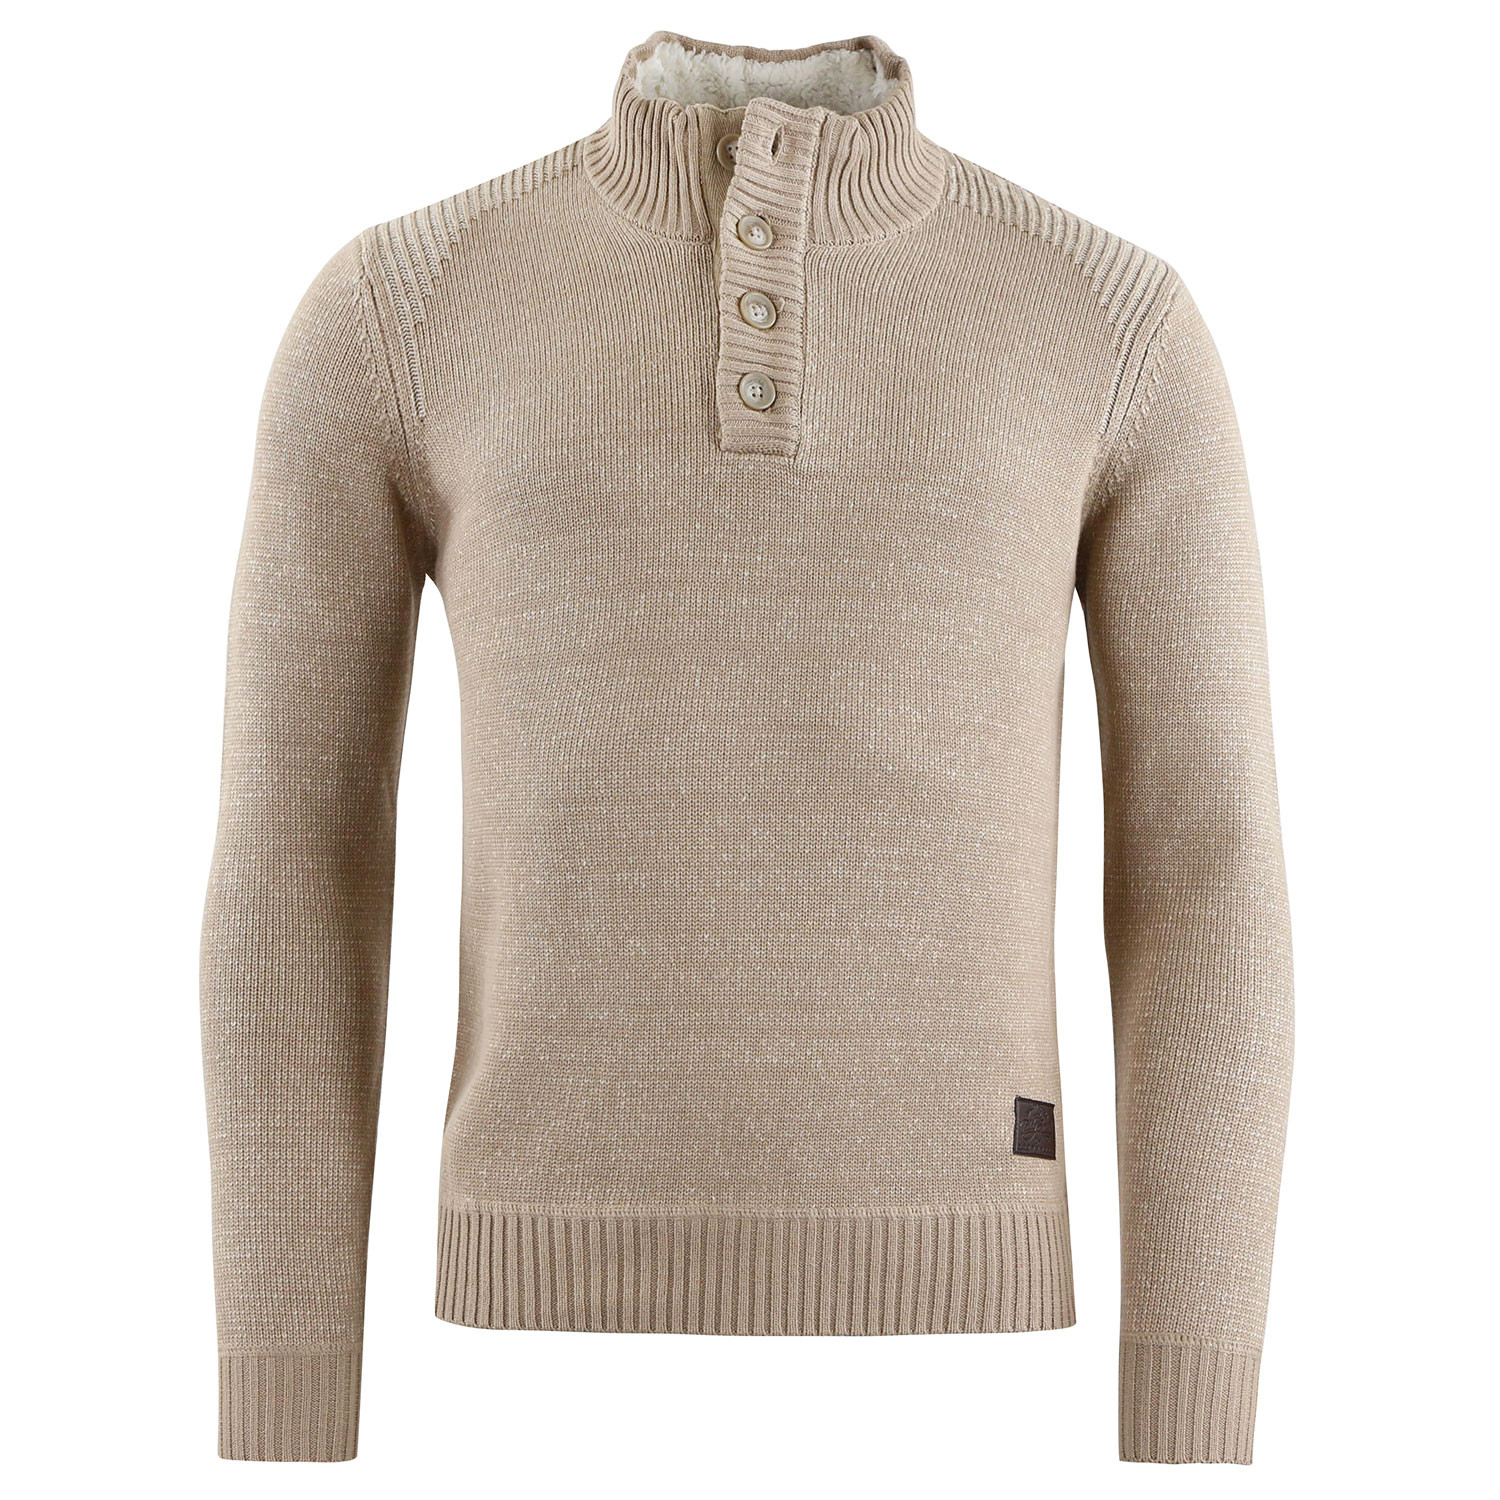 P-Loric Pull Homme TEDDY SMITH BEIGE pas